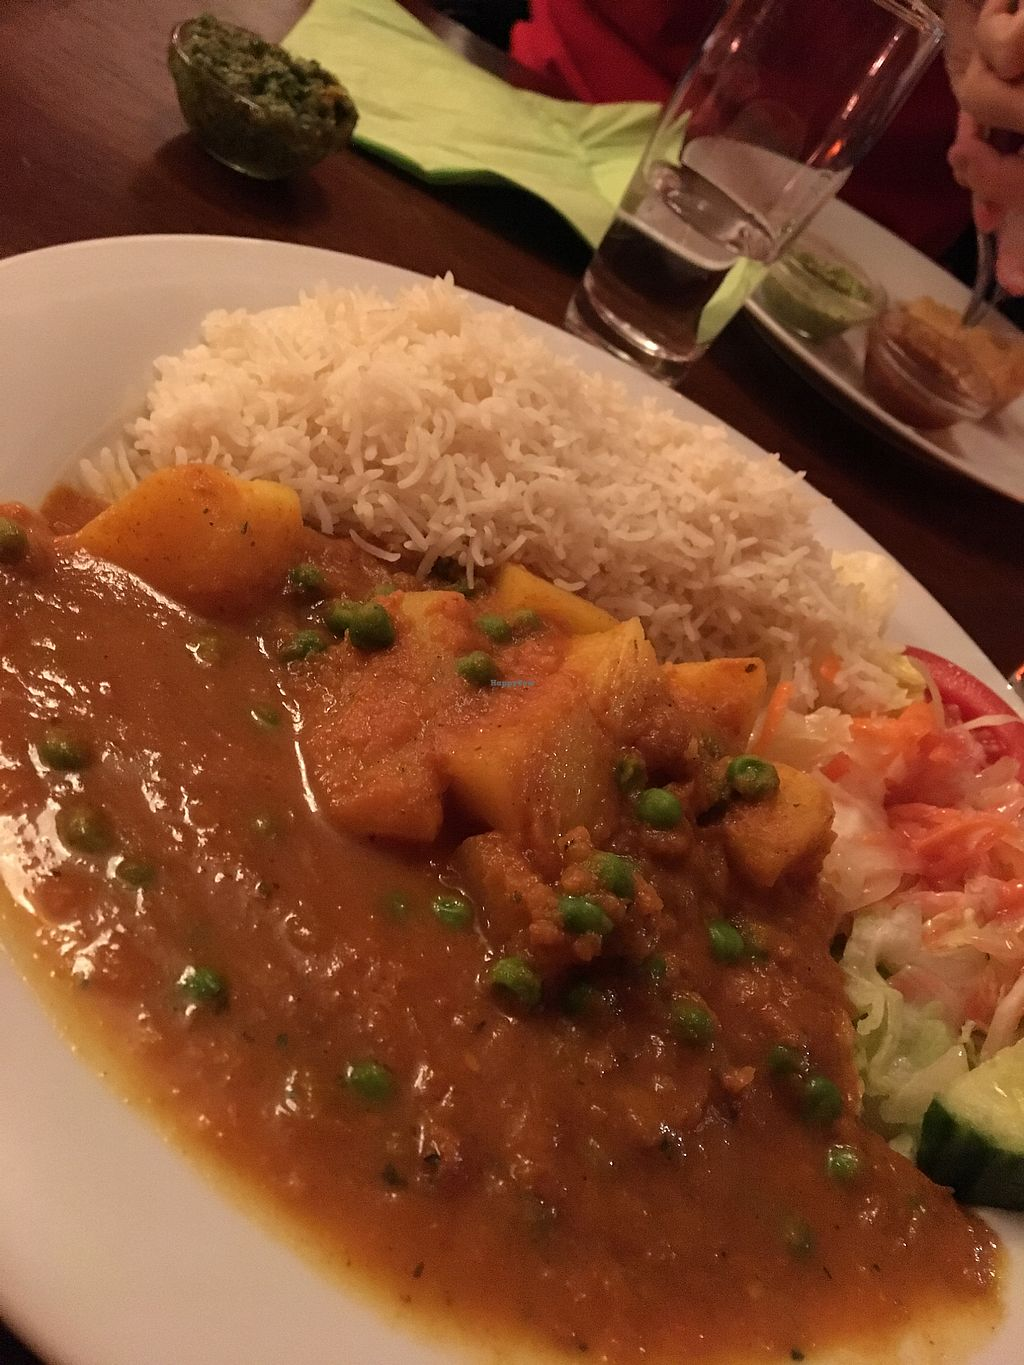 """Photo of Veggie & Vega - Restaurant  by <a href=""""/members/profile/LaurenRobinson"""">LaurenRobinson</a> <br/>Potato and greenbeans  <br/> February 27, 2018  - <a href='/contact/abuse/image/92126/364628'>Report</a>"""